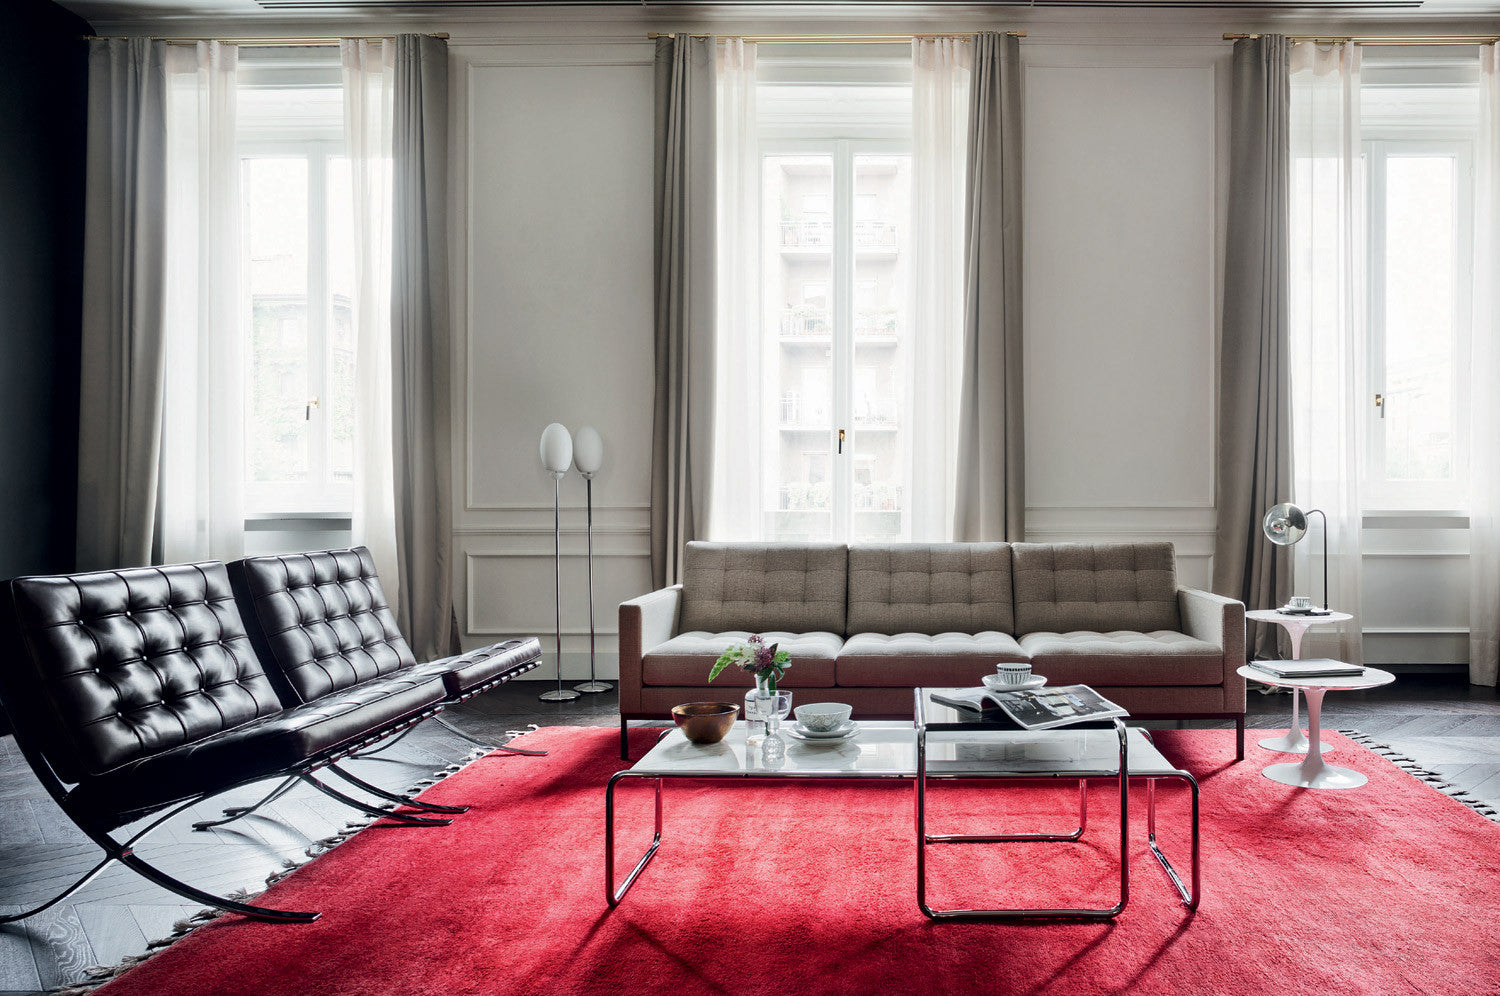 Florence Knoll Relax 3 seat sofa